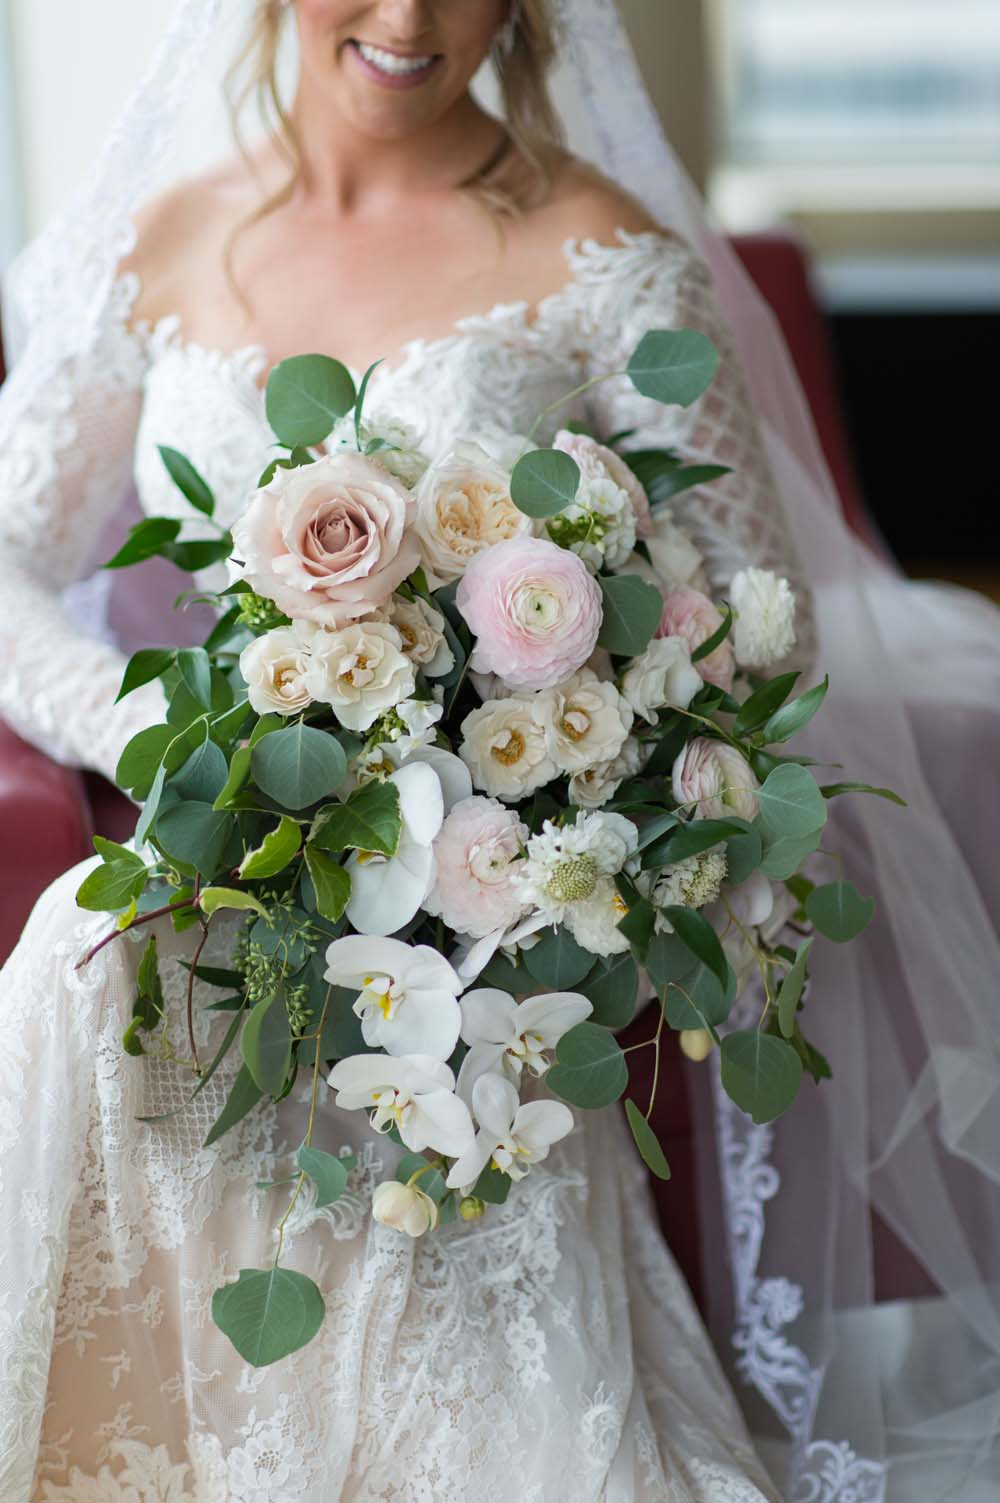 A Classic Vintage inspired Wedding at the One King West in Toronto - Bride with Bouquet